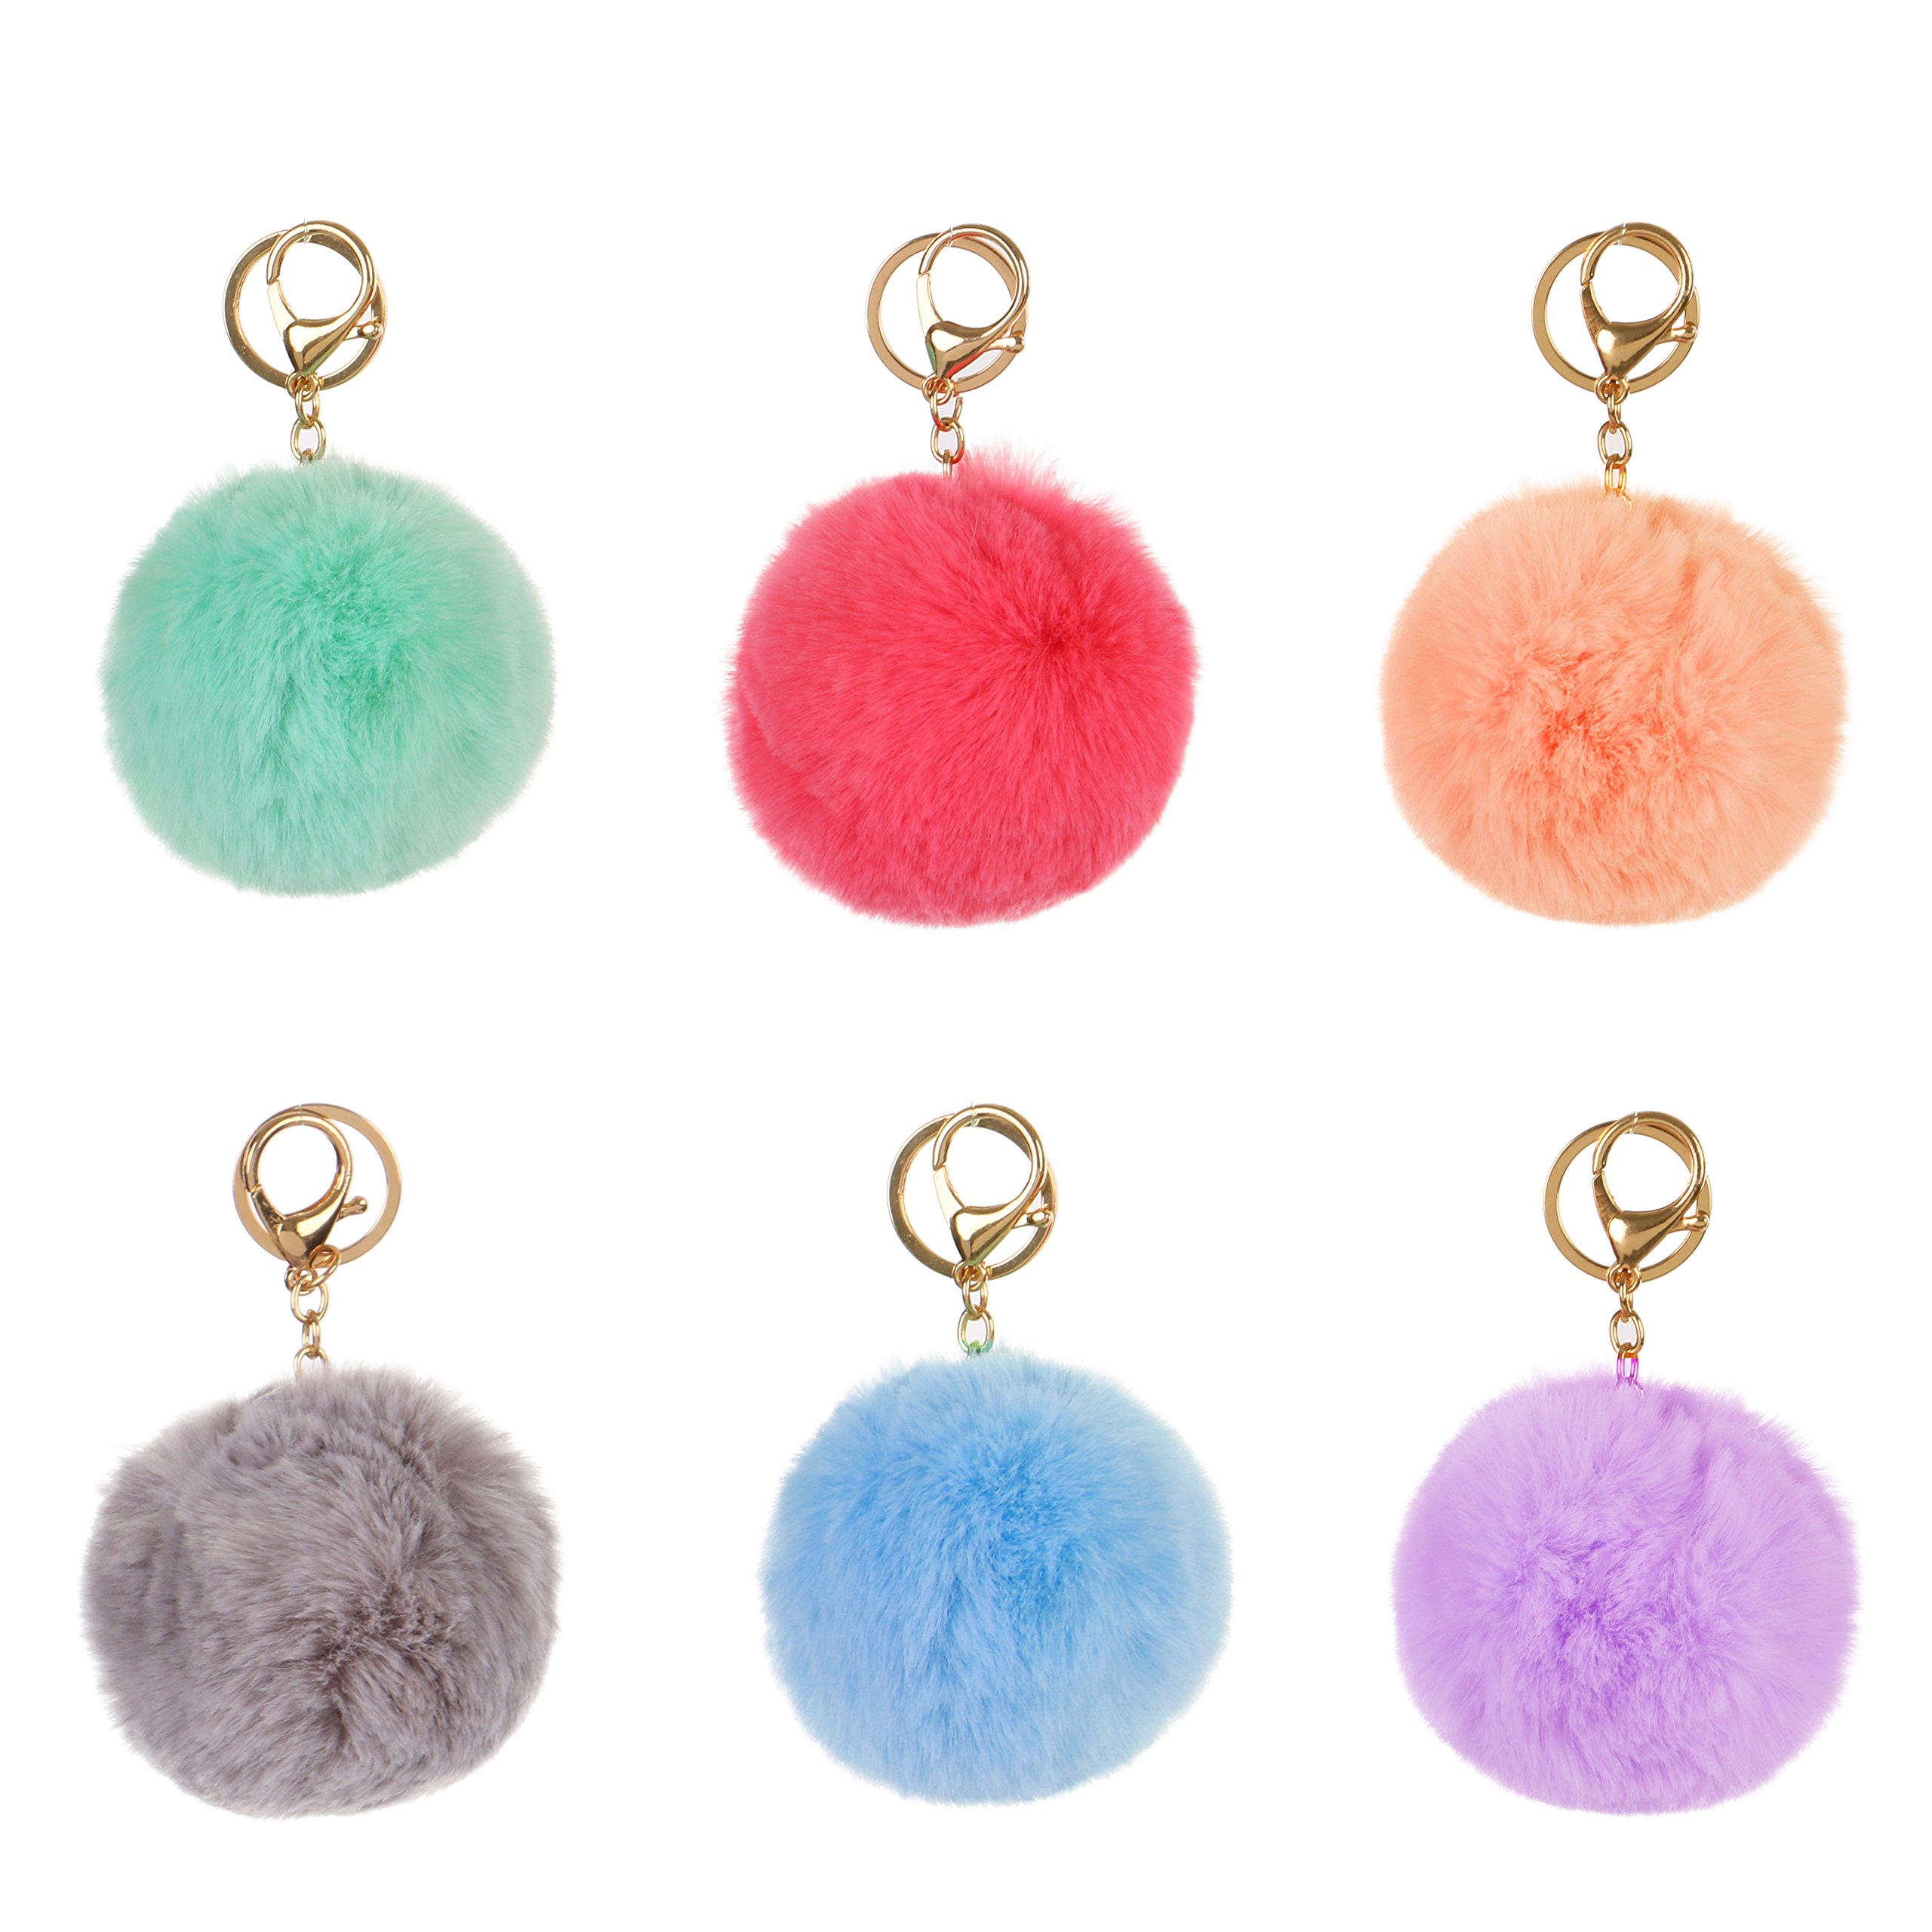 RufnTop 6 PCS PomPom KeyChain Gold Ring Hand bag Accessories(6 PCS PASTEL MIX2)